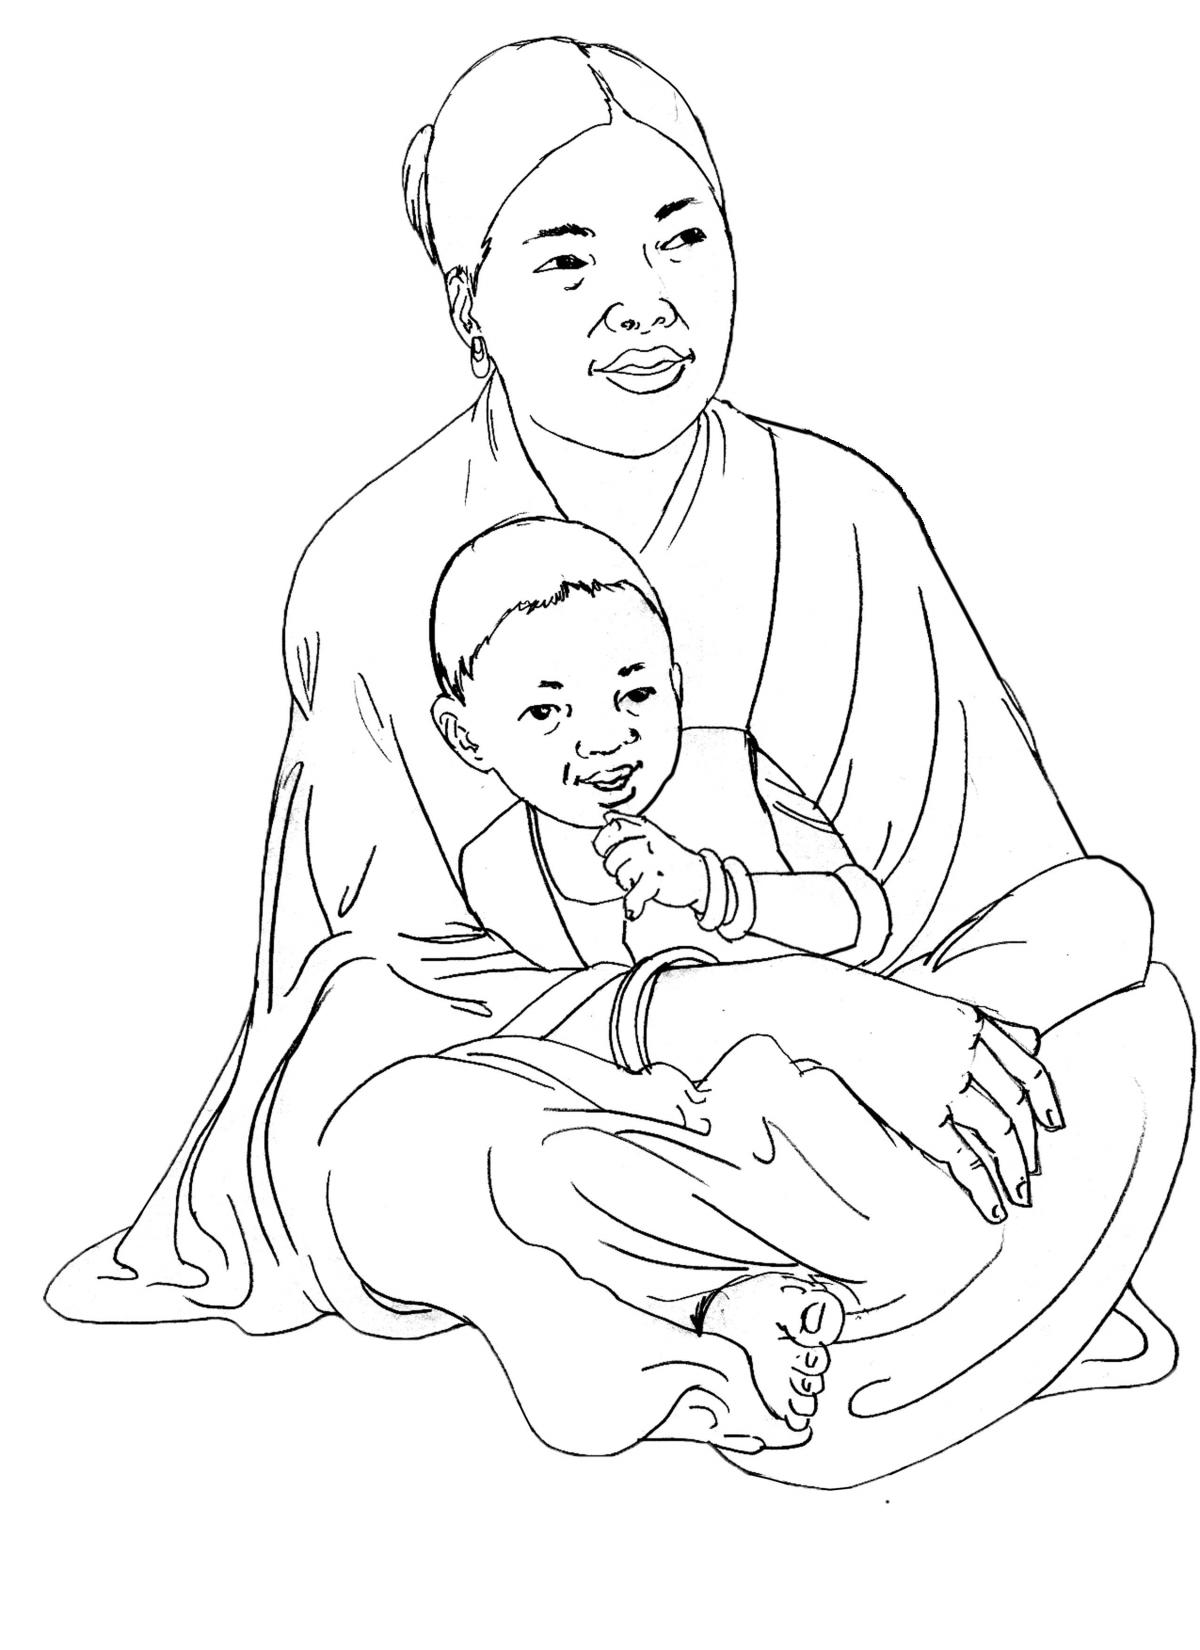 People - Woman and child sitting - 02 - India